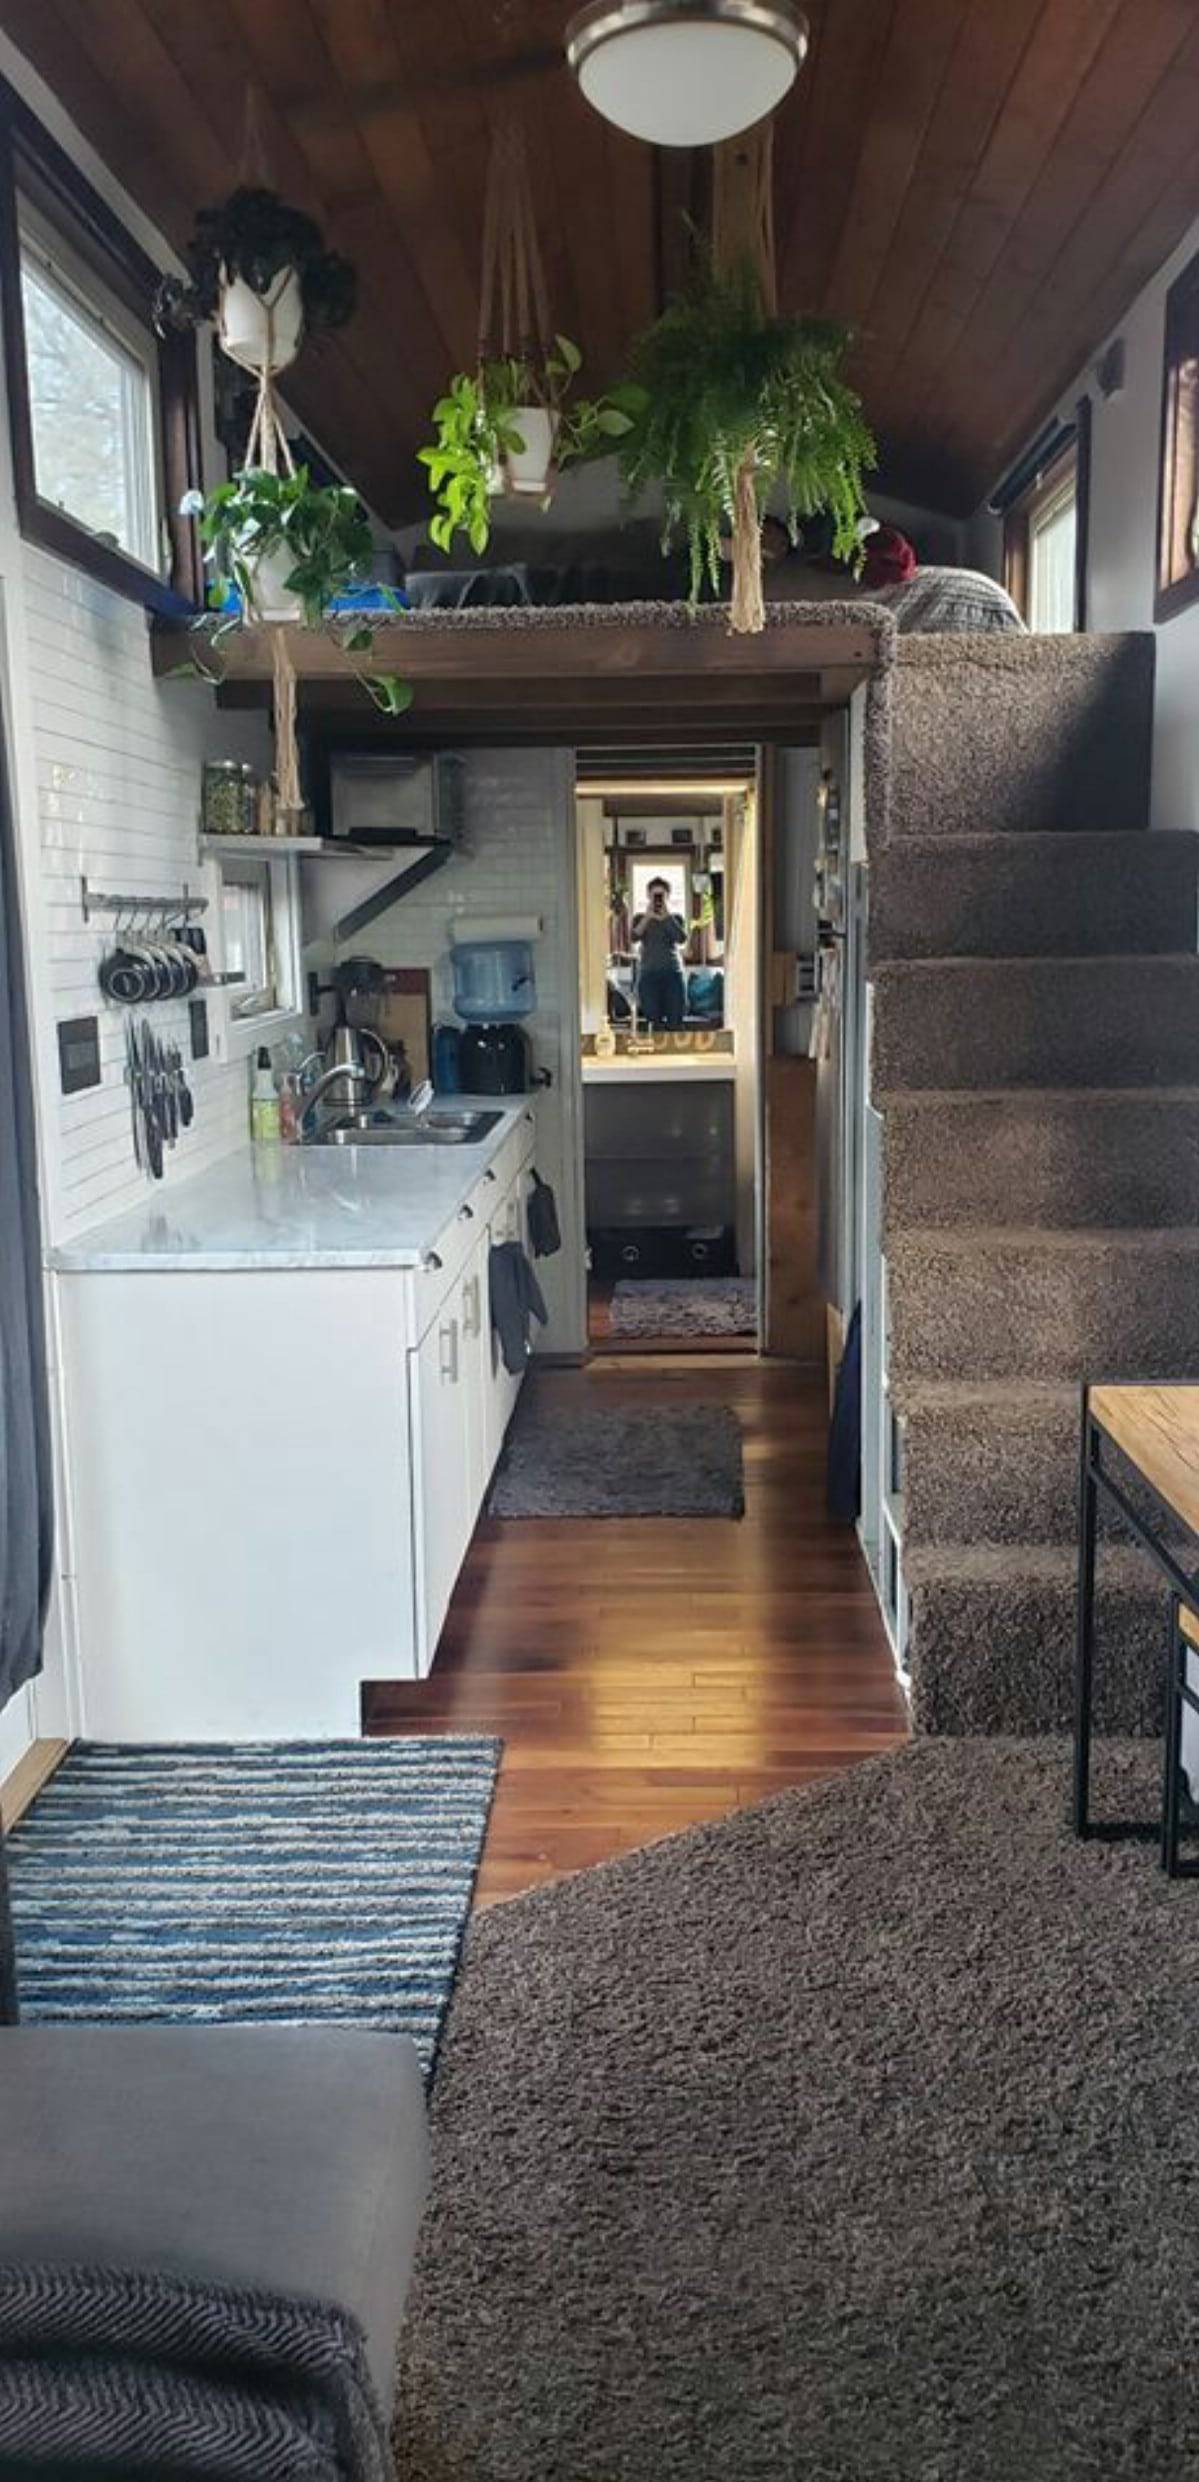 Tiny house view of kitchen with white counters